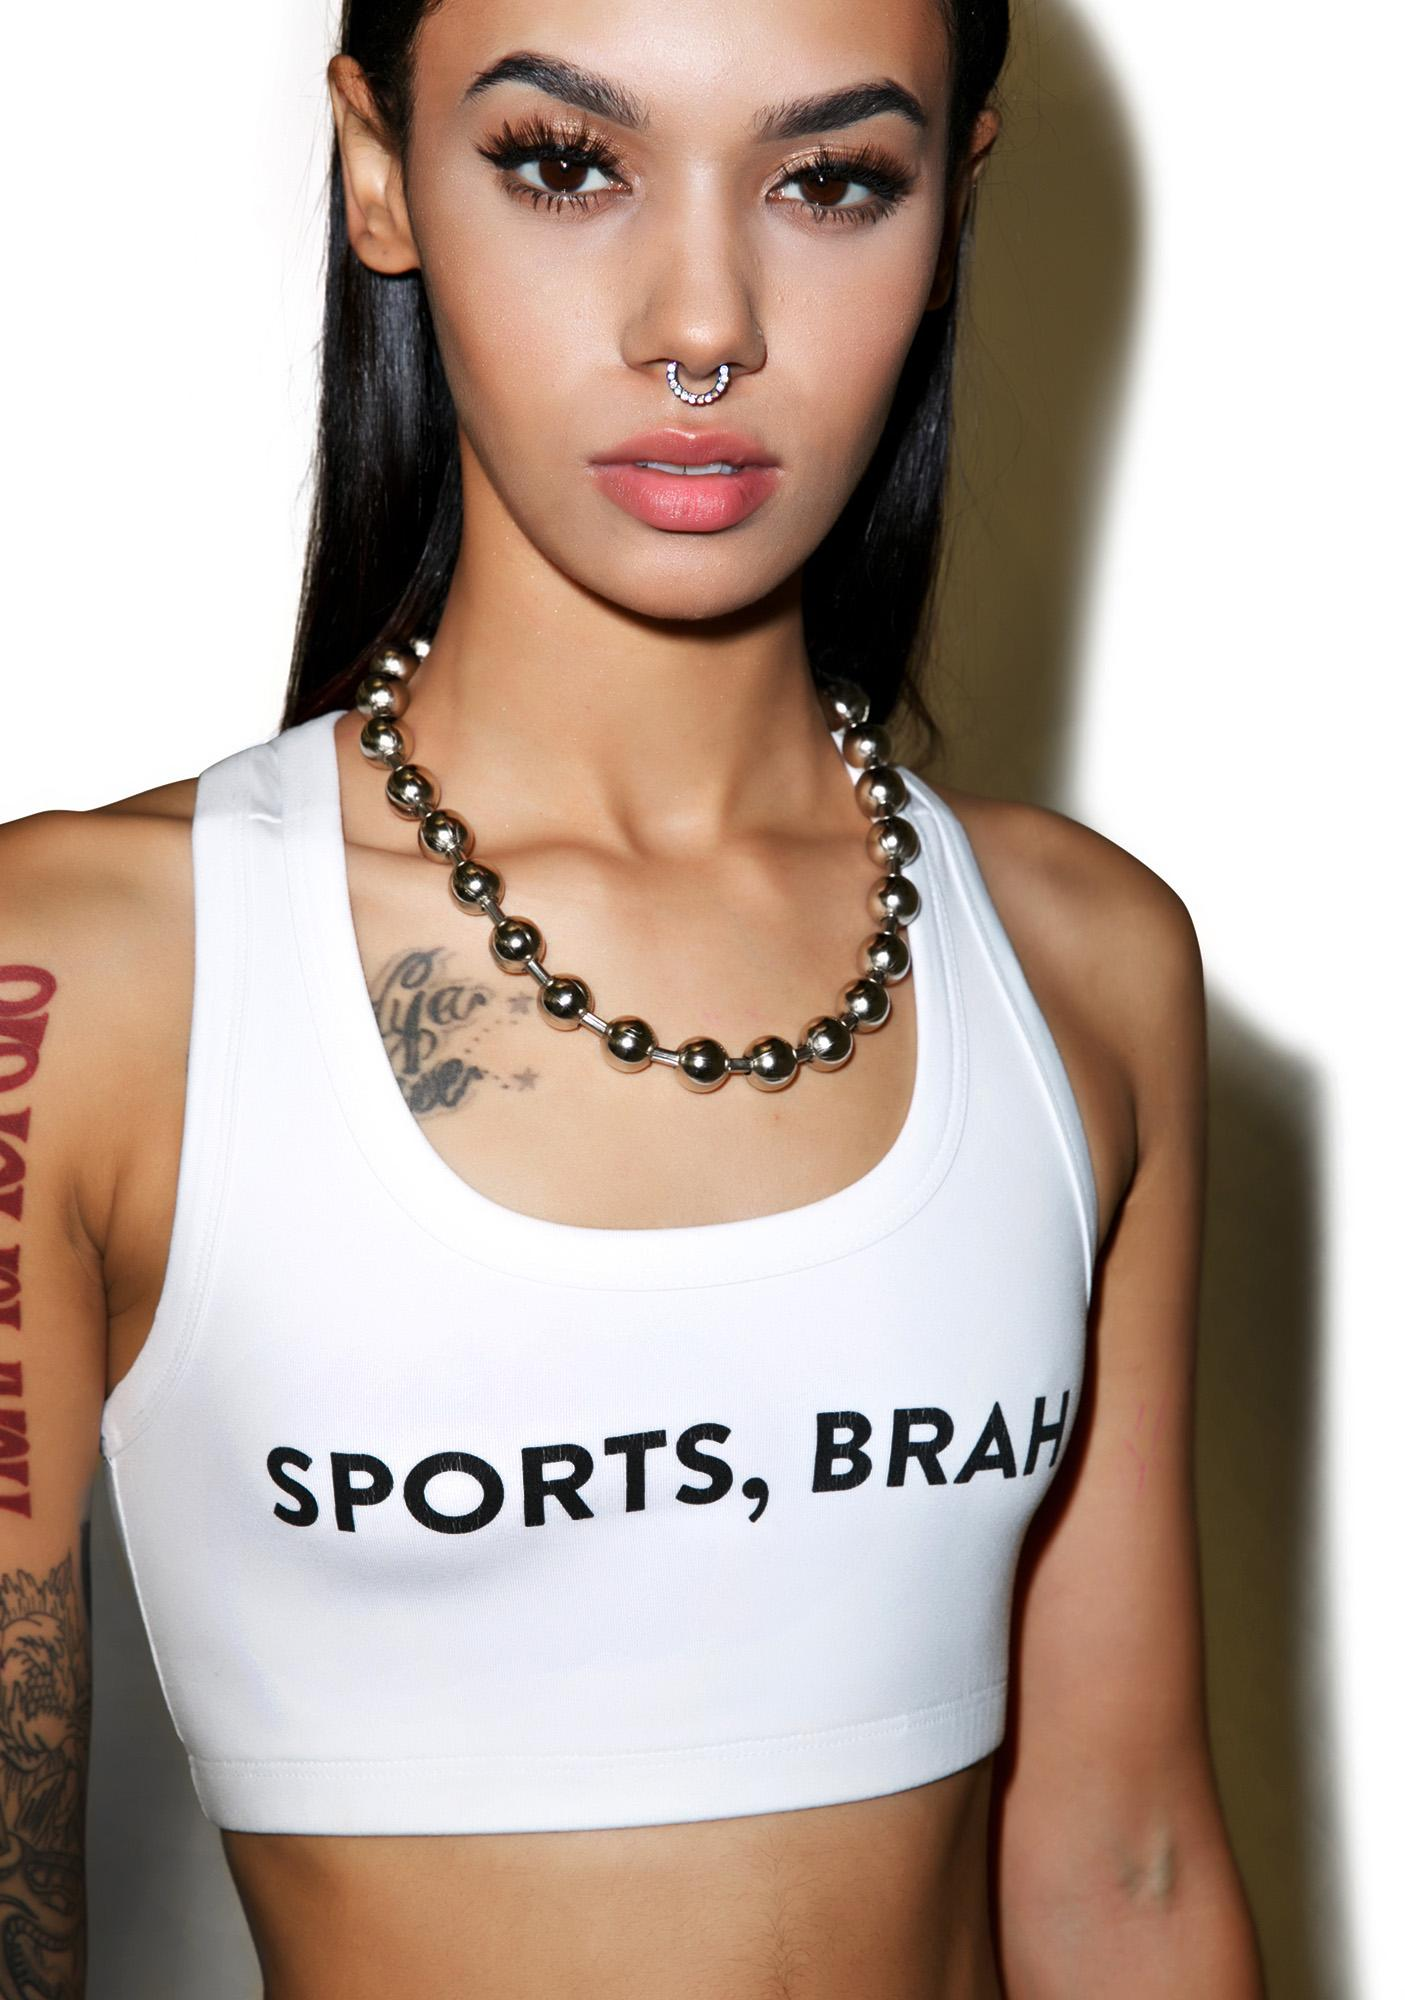 Barber Sports Brah Crop Top